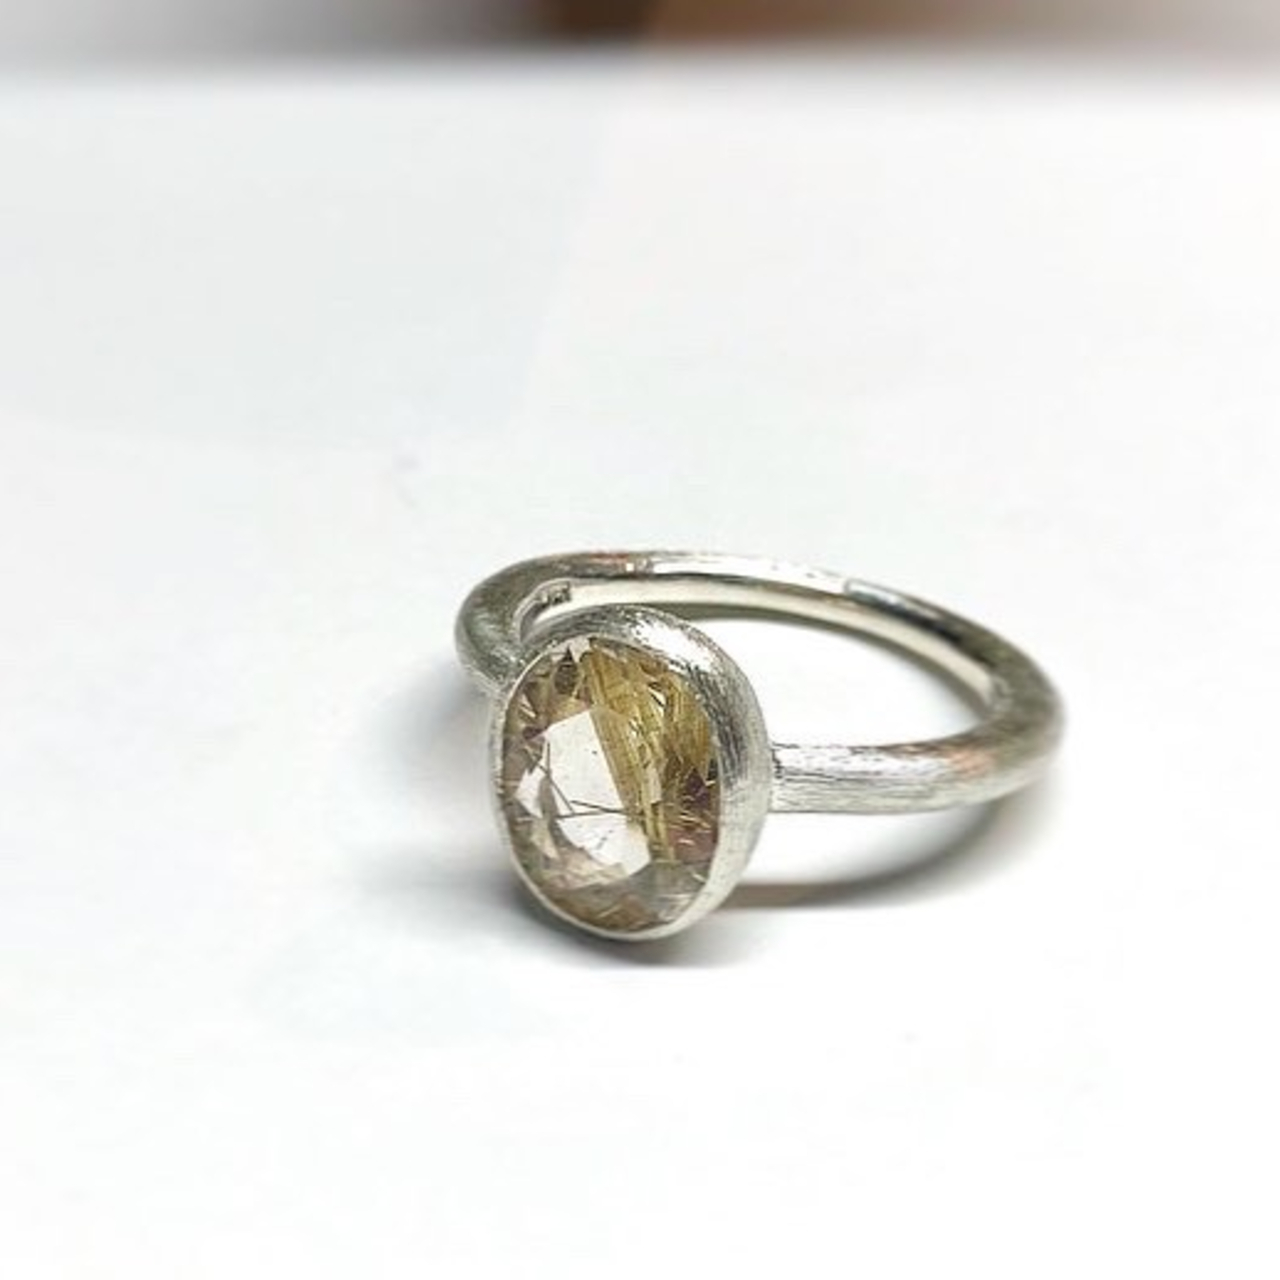 【1OMSV】『One off』 Rutile quartz oval facet cut ring